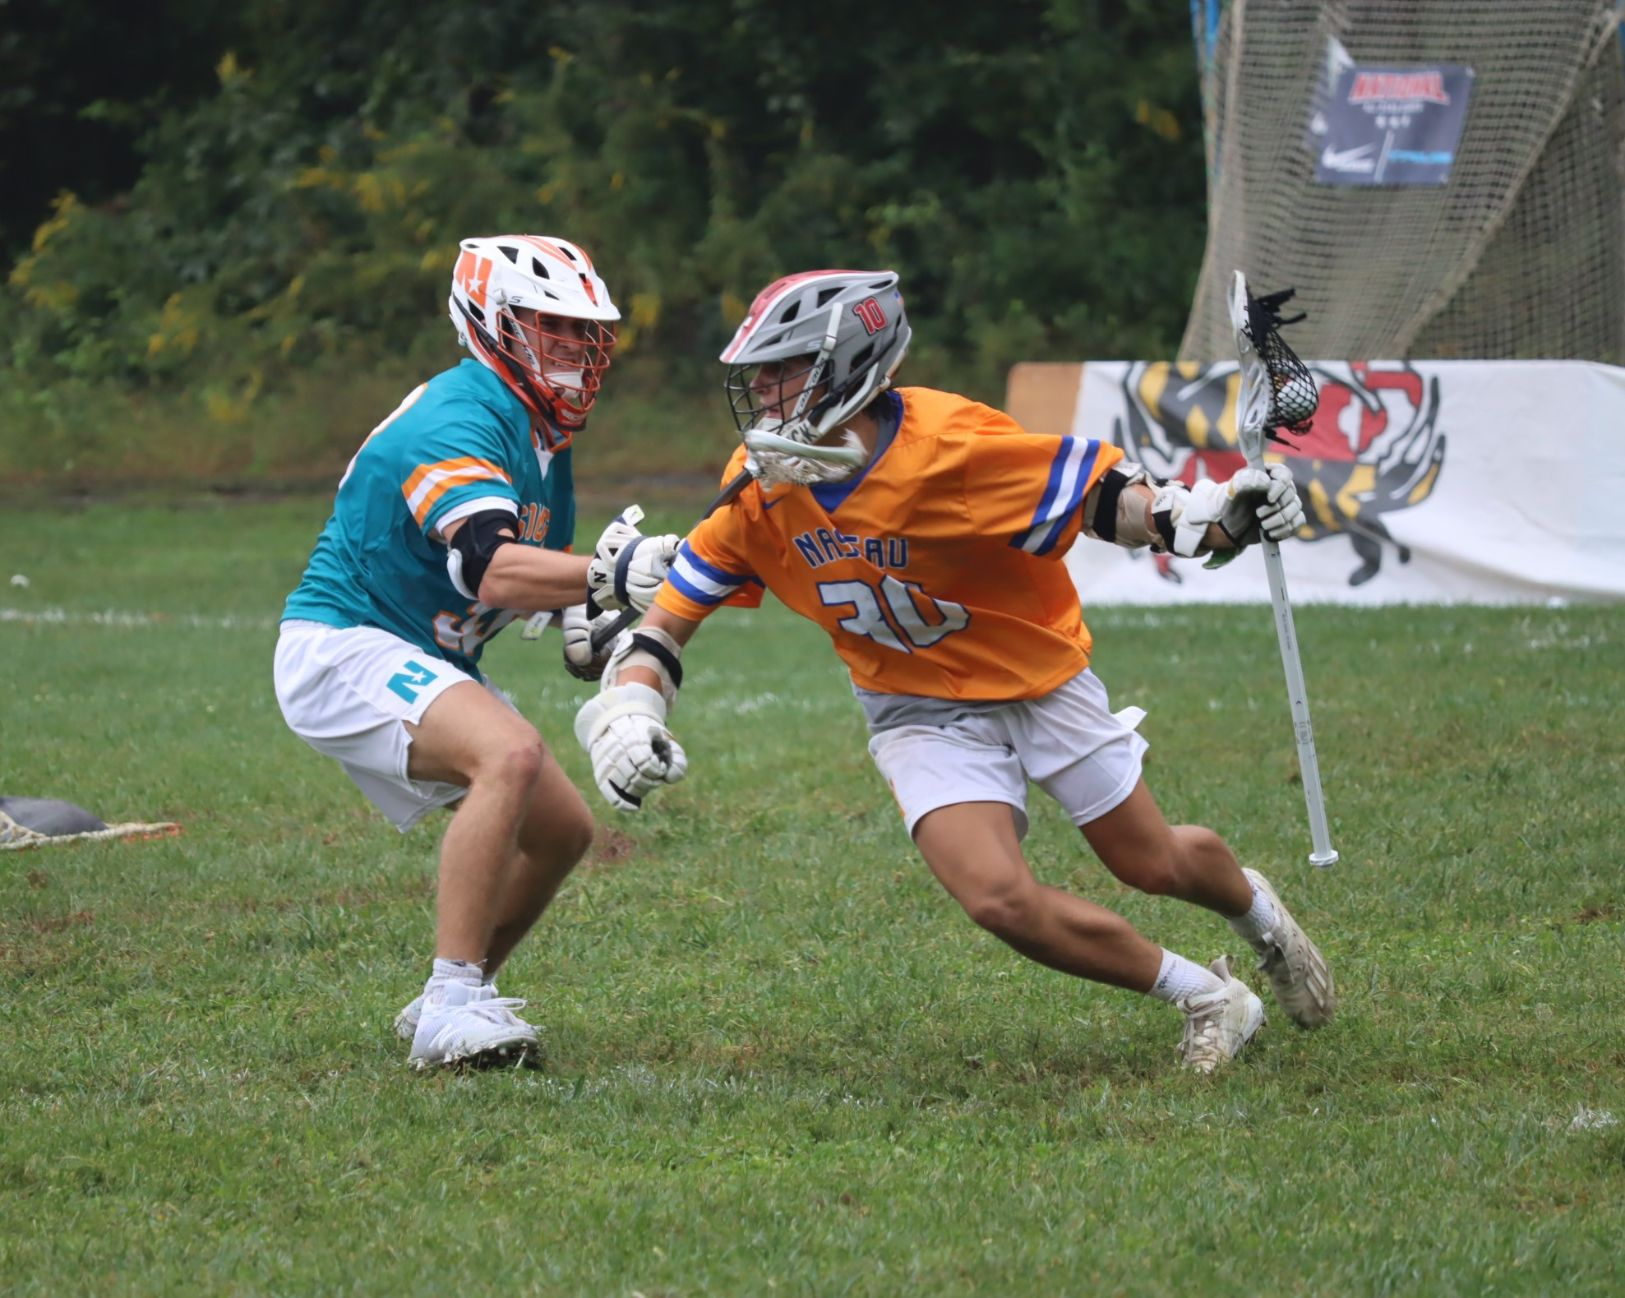 Matt Caputo, 2022 Standout Lacrosse Player at the National All Star Games in Baltimore, Maryland